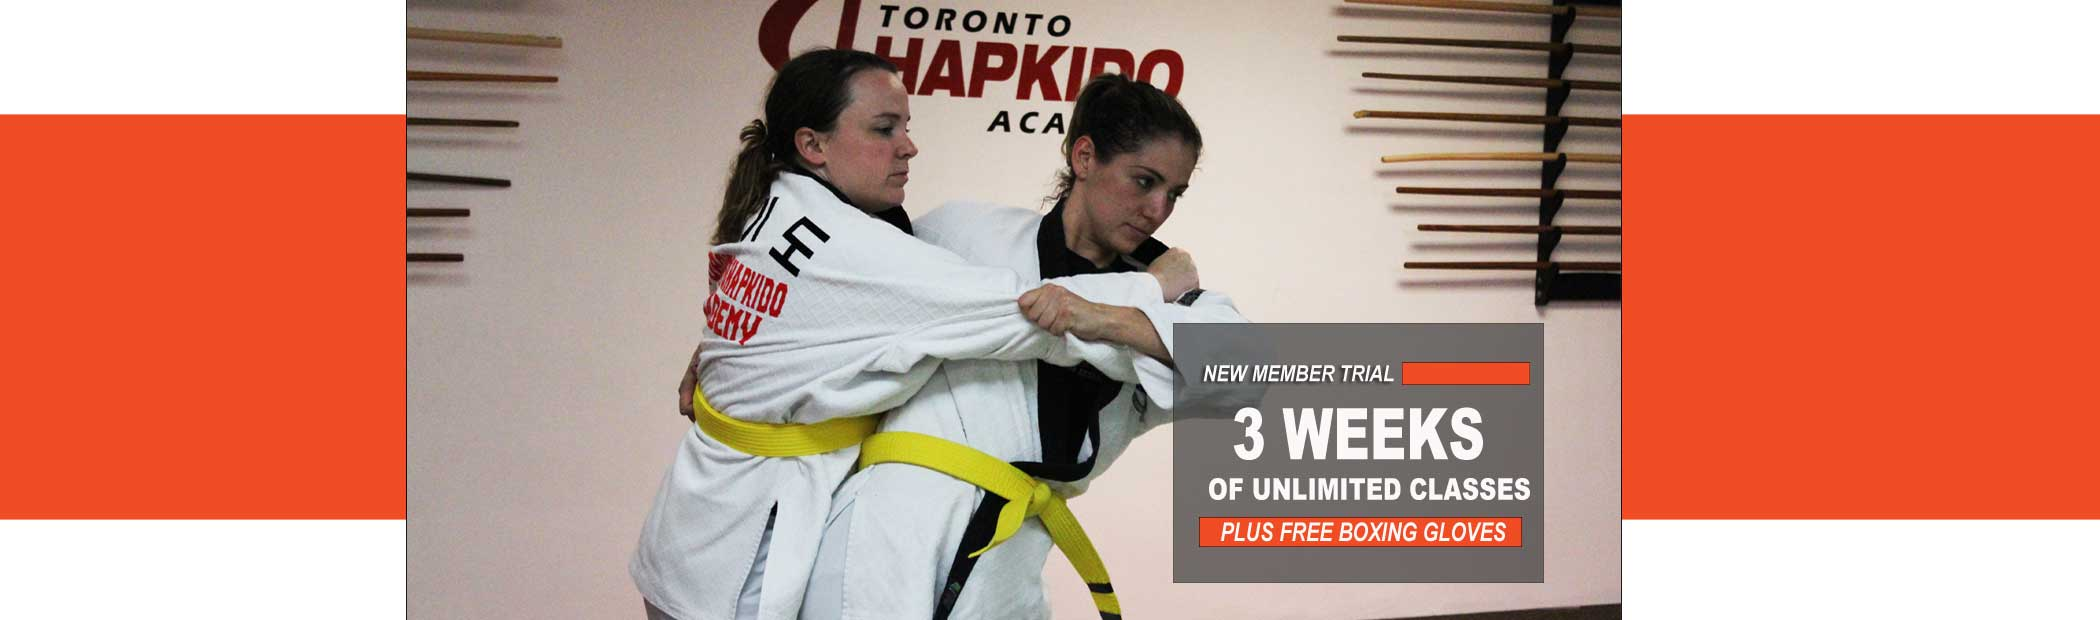 toronto self defense school